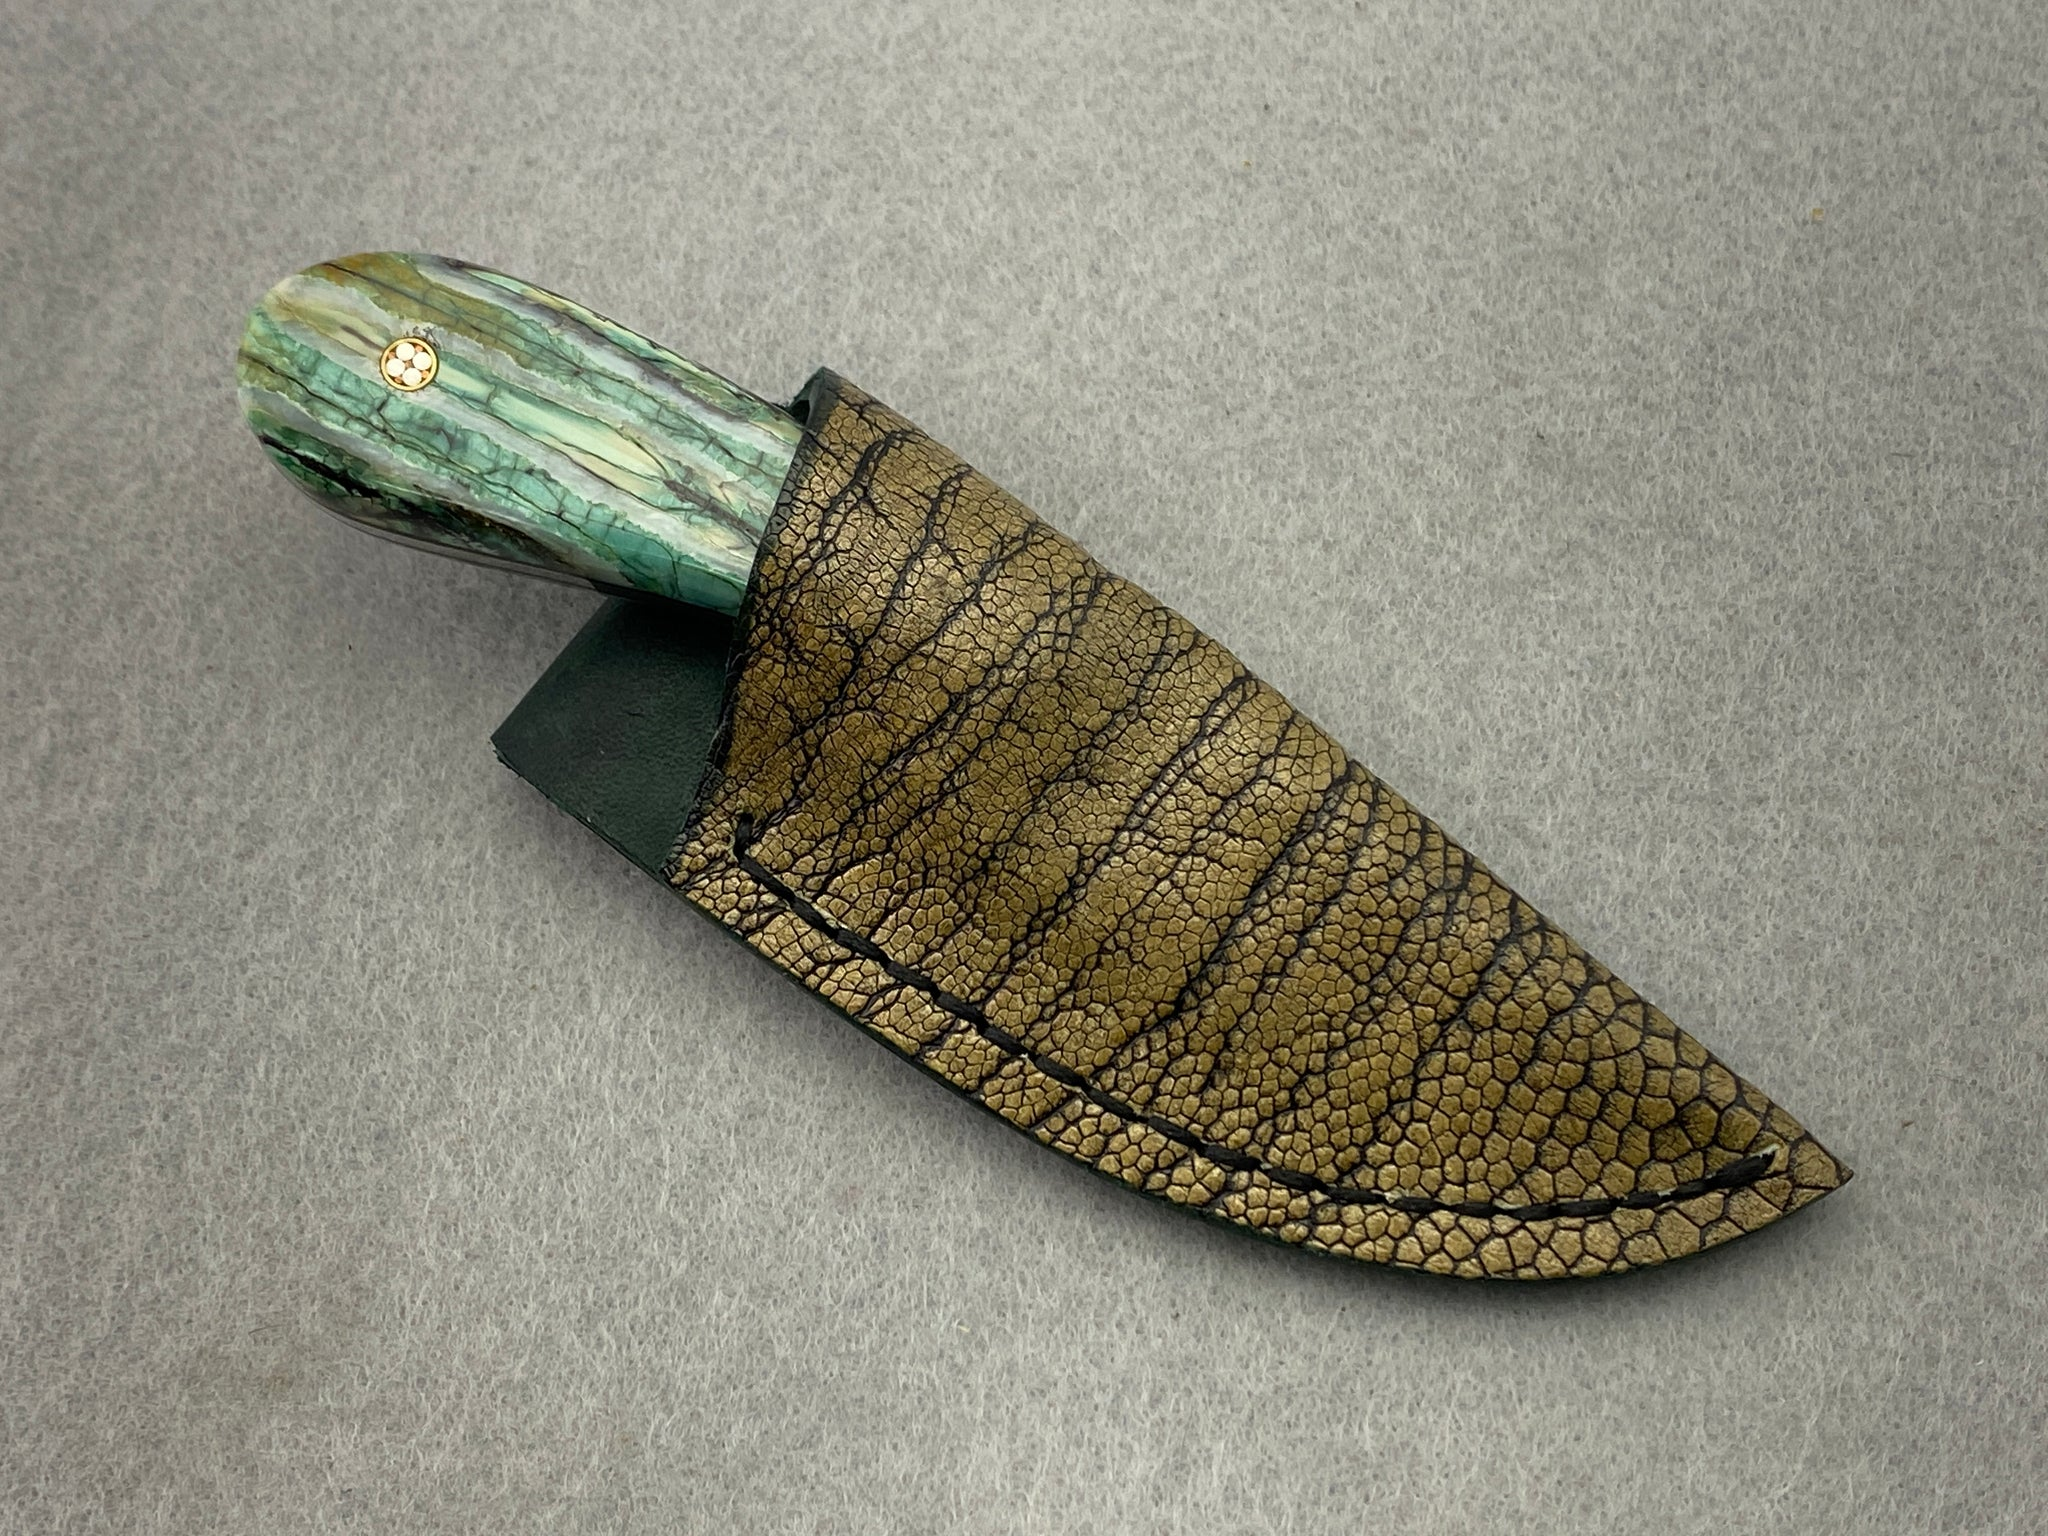 Sam Hawkins Drop Point False Edge Feather Damascus with Jade Mammoth Molar Handle